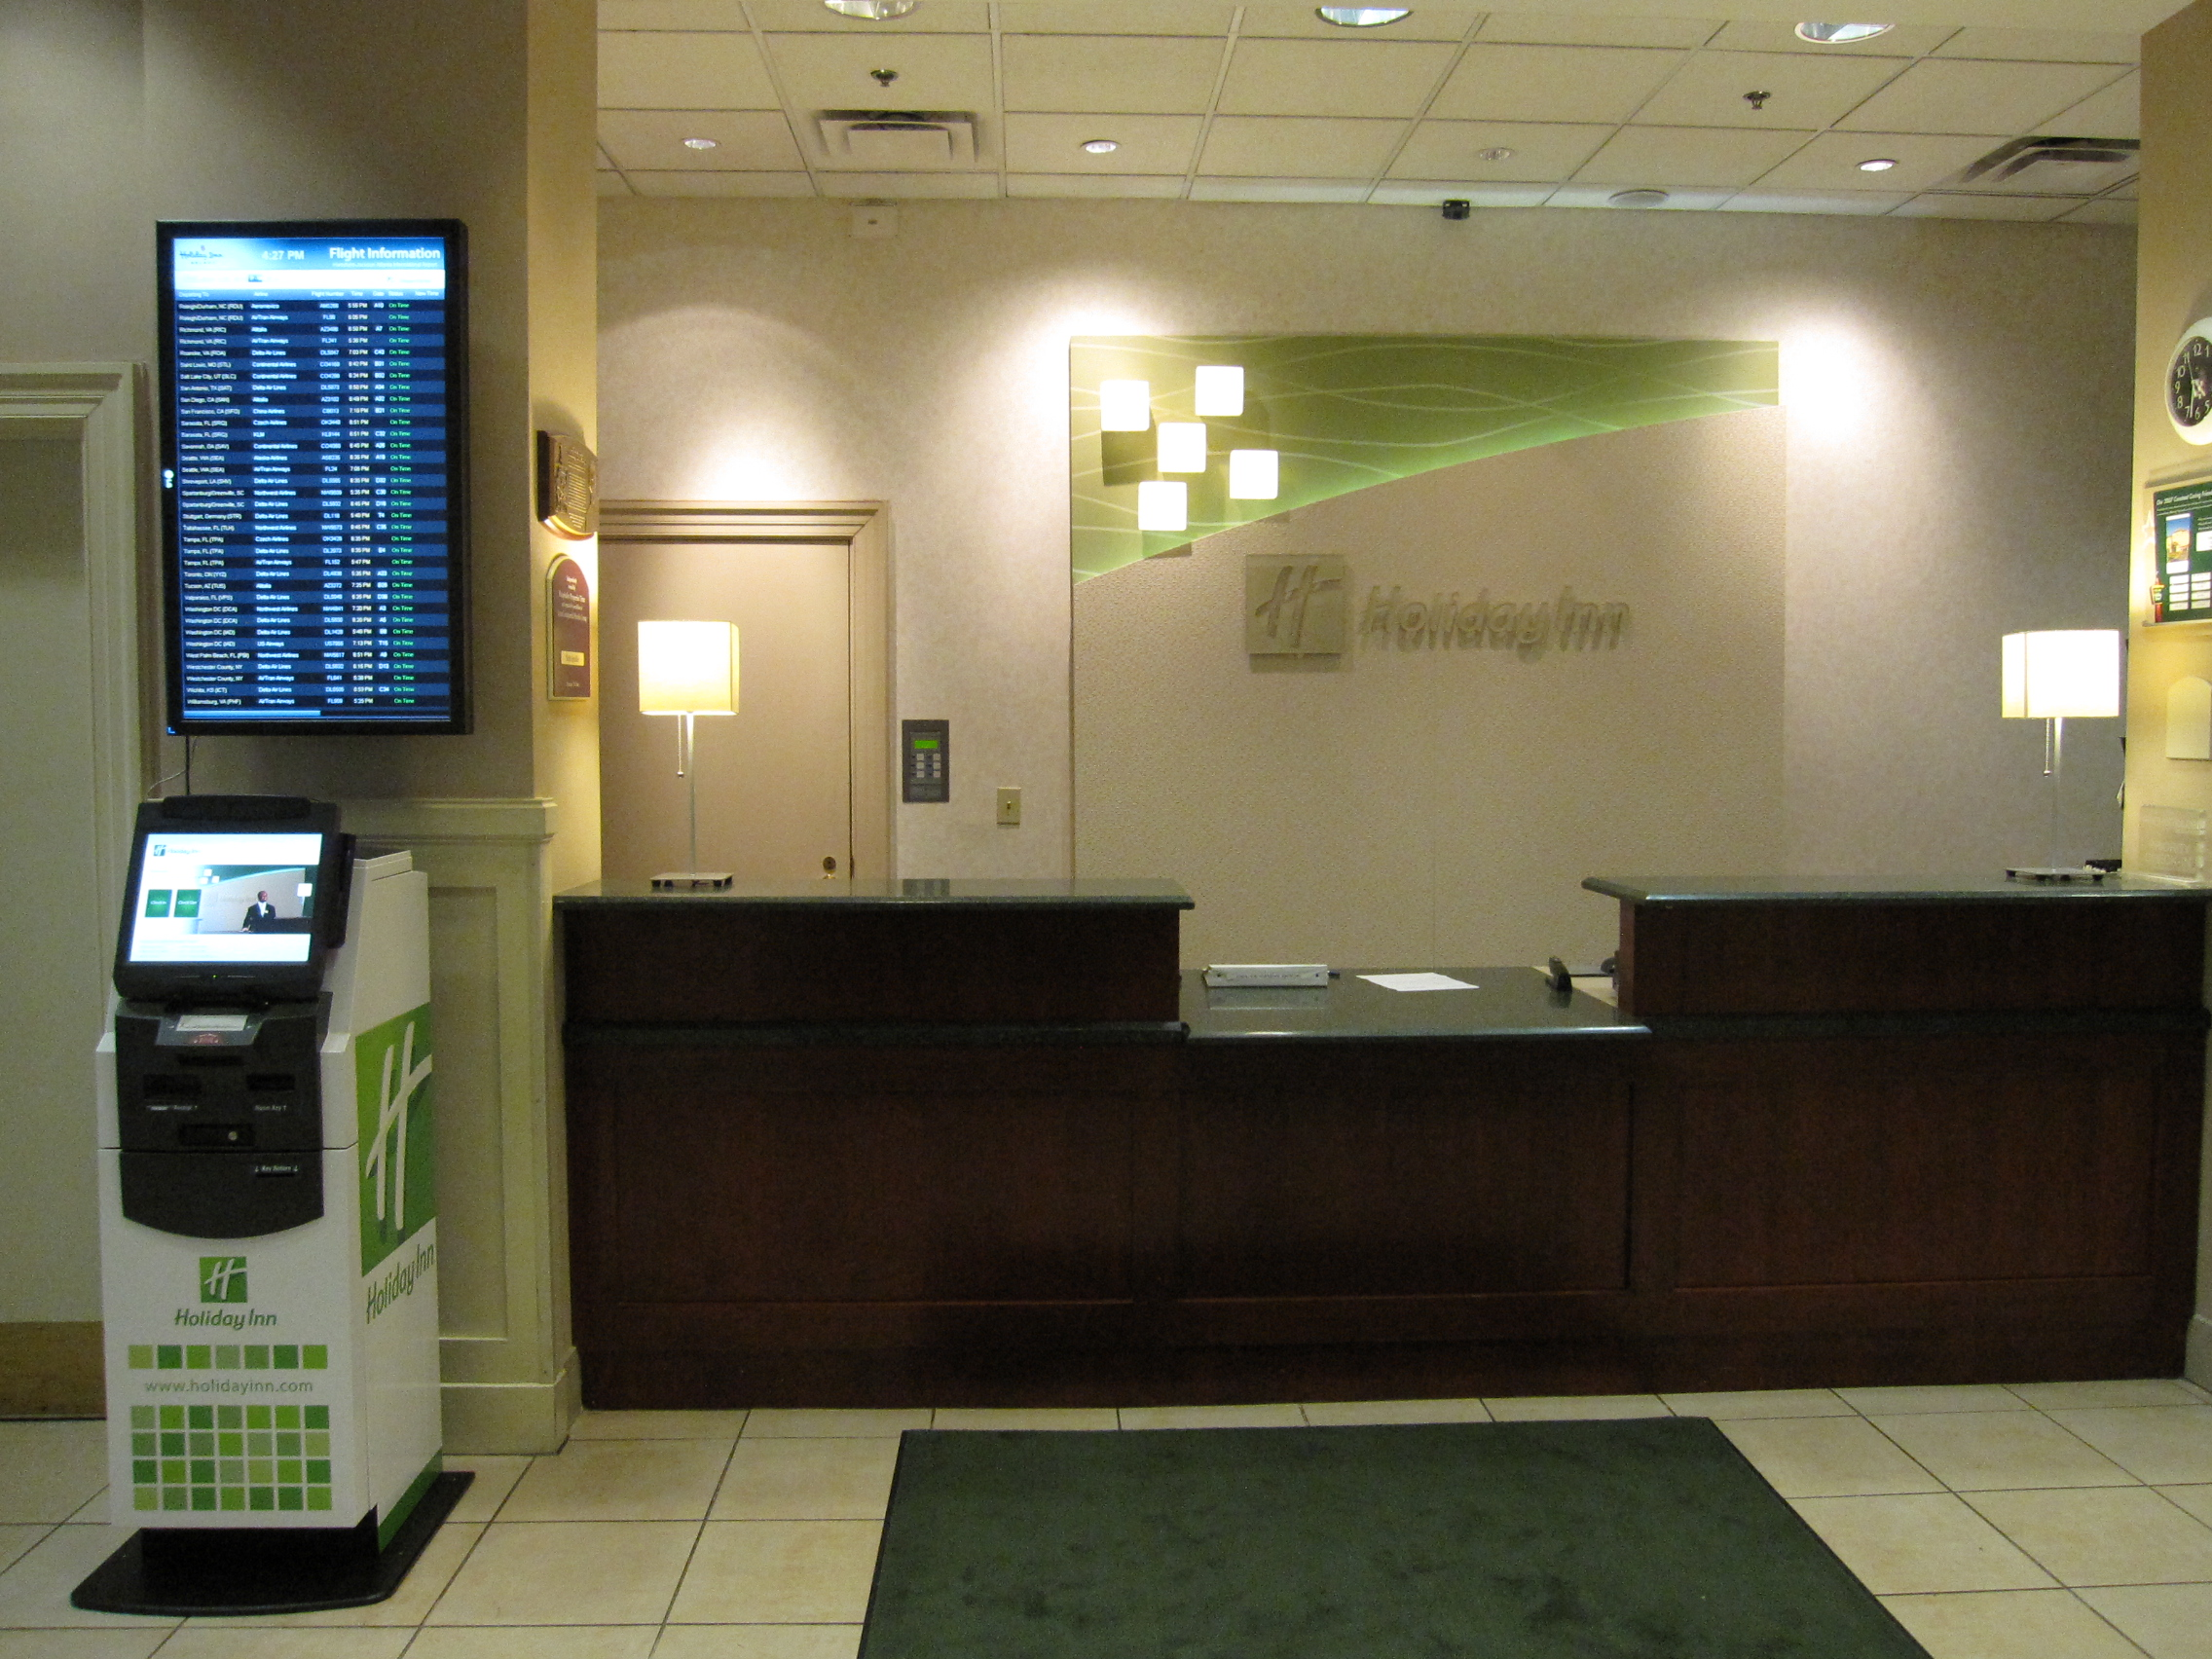 Kiosk in Holiday Inn Lobby with FlightBoard